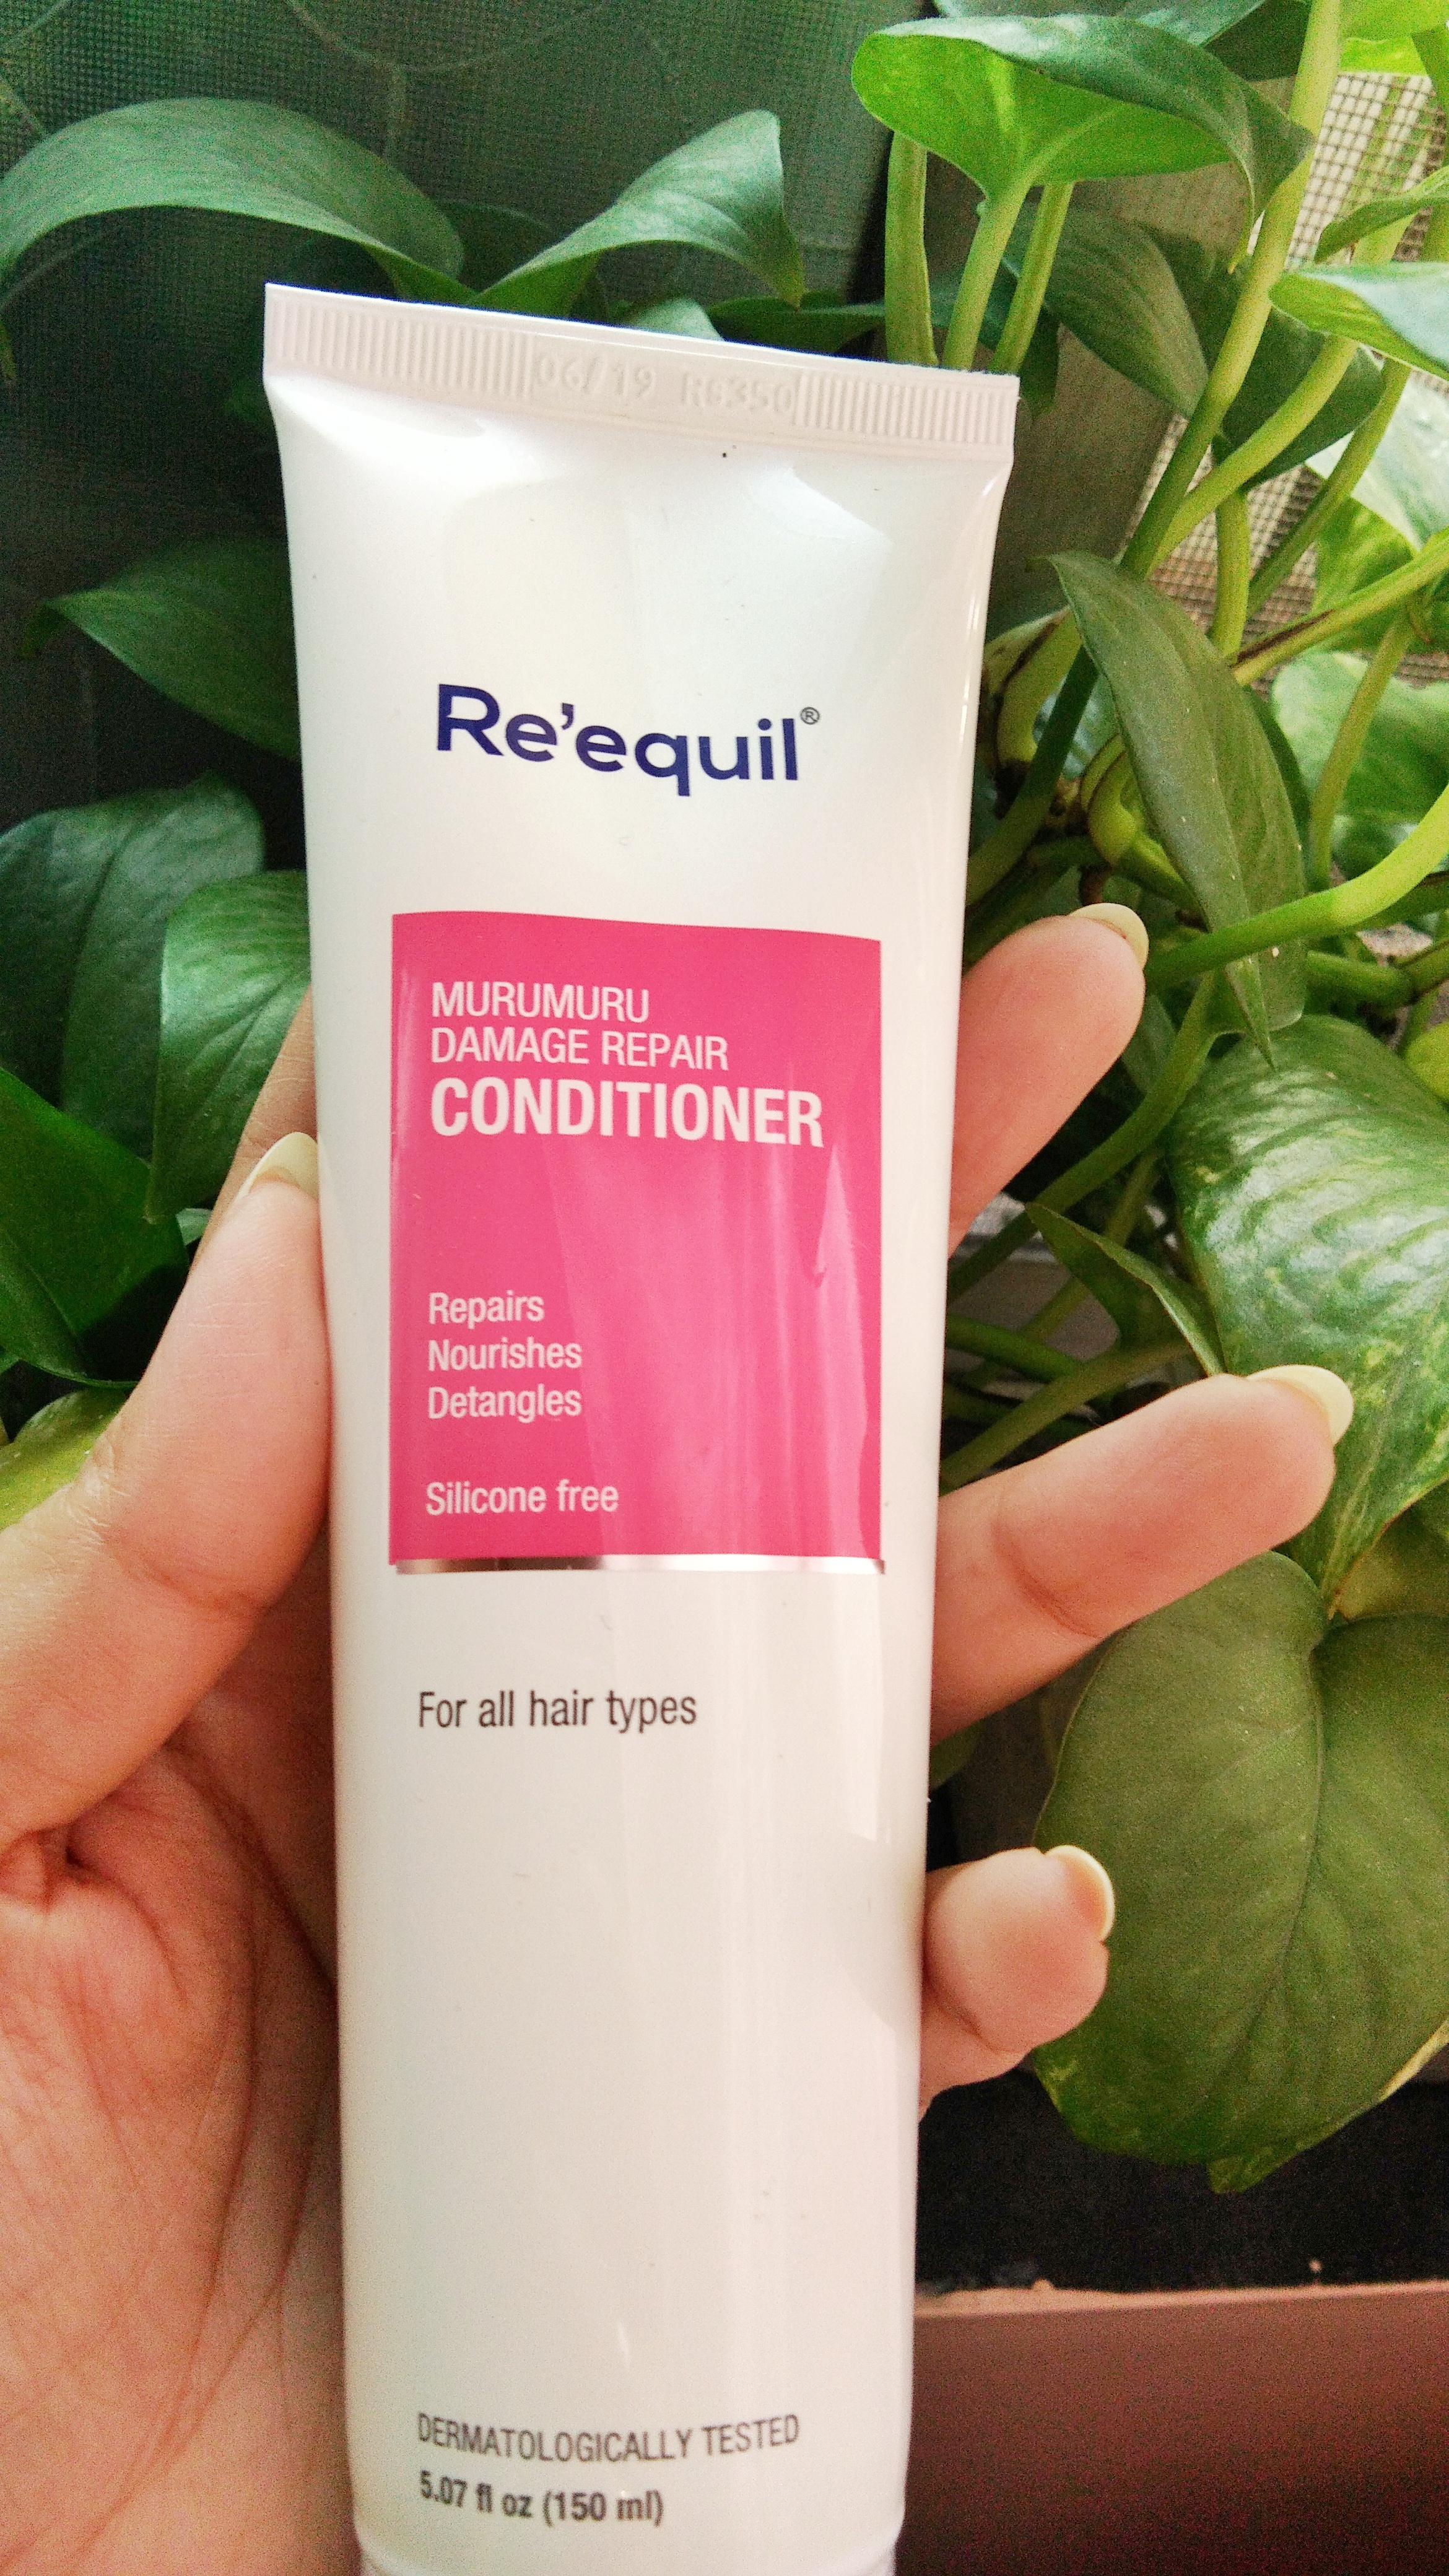 Re'equil Murumuru Damage Repair Conditioner-Helps reduce frizz and gives a shiny texture-By cinimol_nair